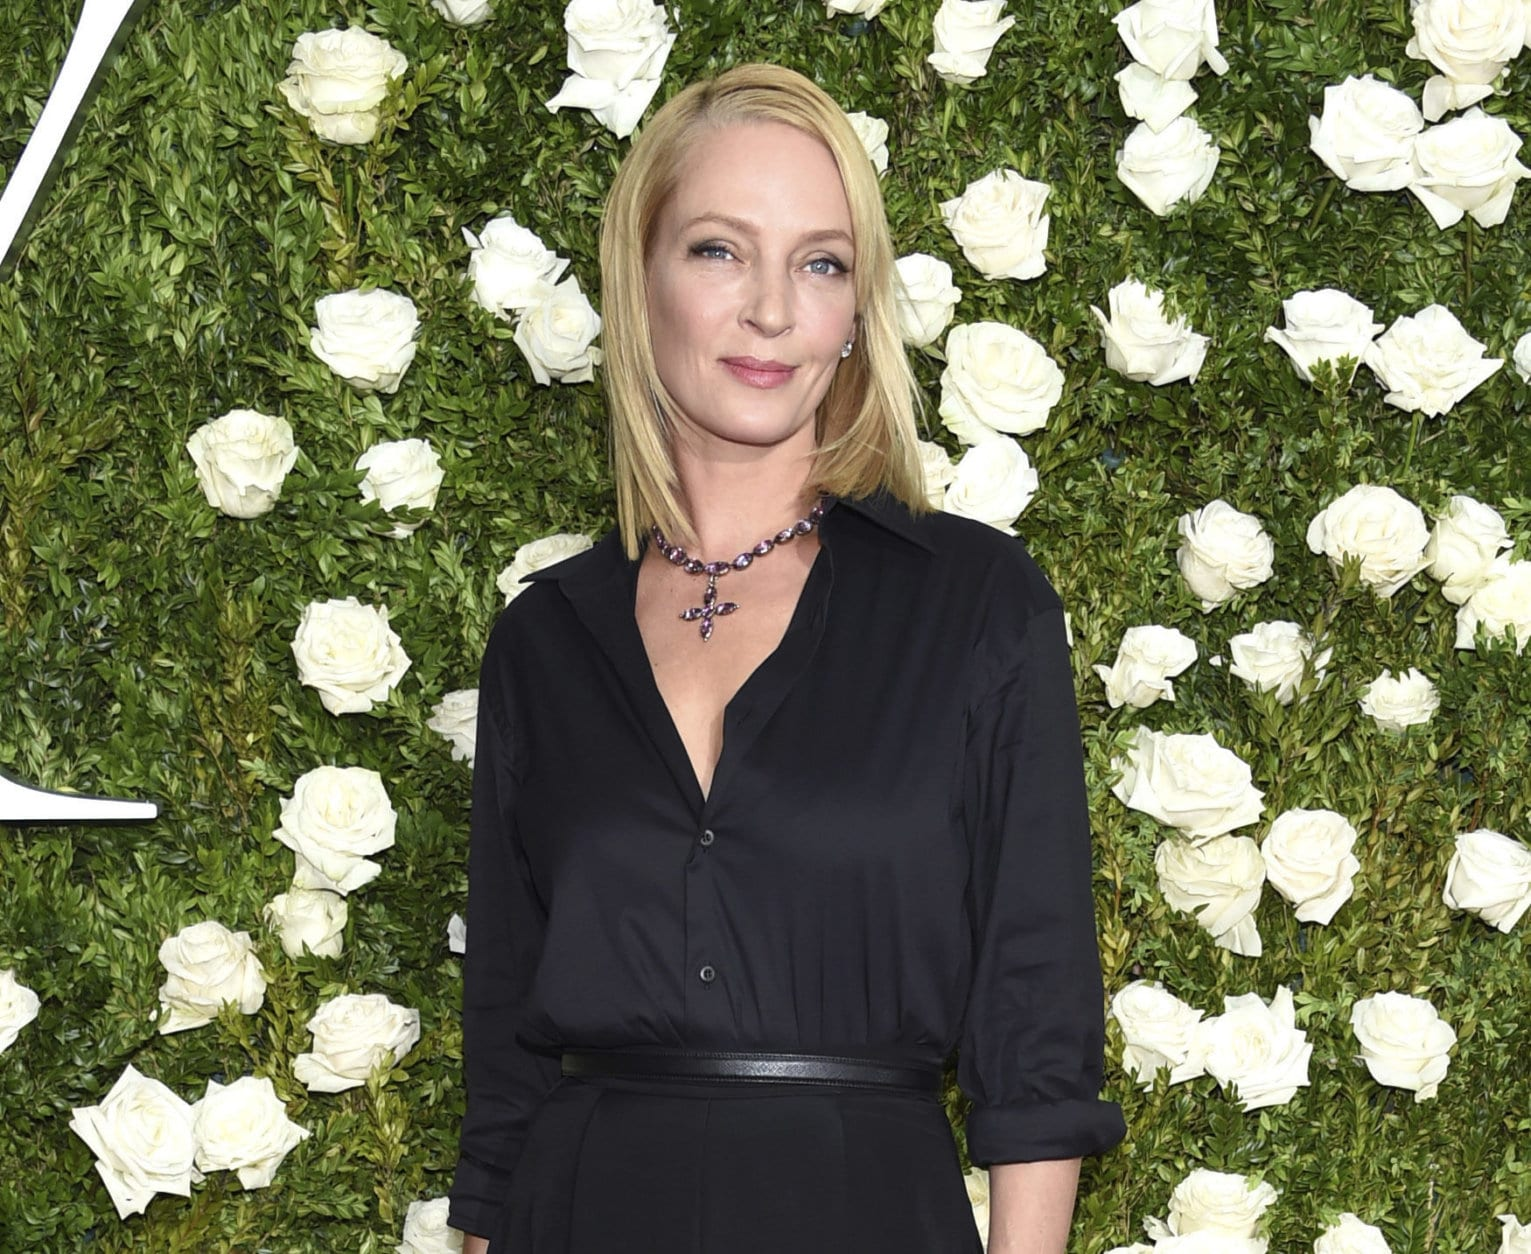 """FILE - In this June 11, 2017 file photo, Uma Thurman arrives at the 71st annual Tony Awards in New York. Thurman wished everyone a happy Thanksgiving except disgraced movie mogul Harvey Weinstein, saying in a cryptic online post that he doesn't """"deserve a bullet.""""  Thurman starred in the Weinstein-produced films """"Pulp Fiction"""" and the """"Kill Bill"""" films. (Photo by Evan Agostini/Invision/AP, File)"""